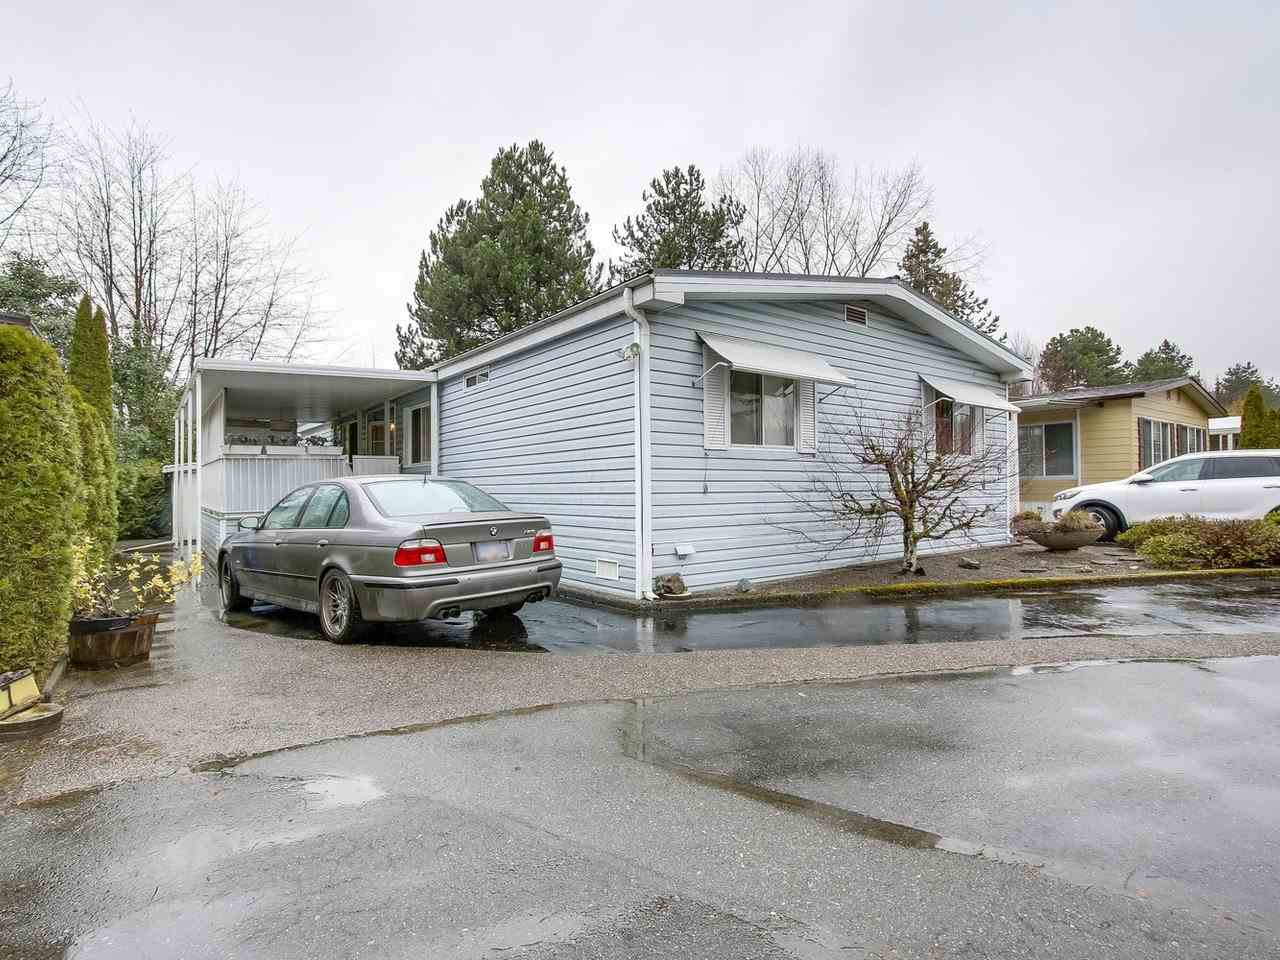 Main Photo: 6 145 KING EDWARD Street in Coquitlam: Coquitlam East Manufactured Home for sale : MLS®# R2248856